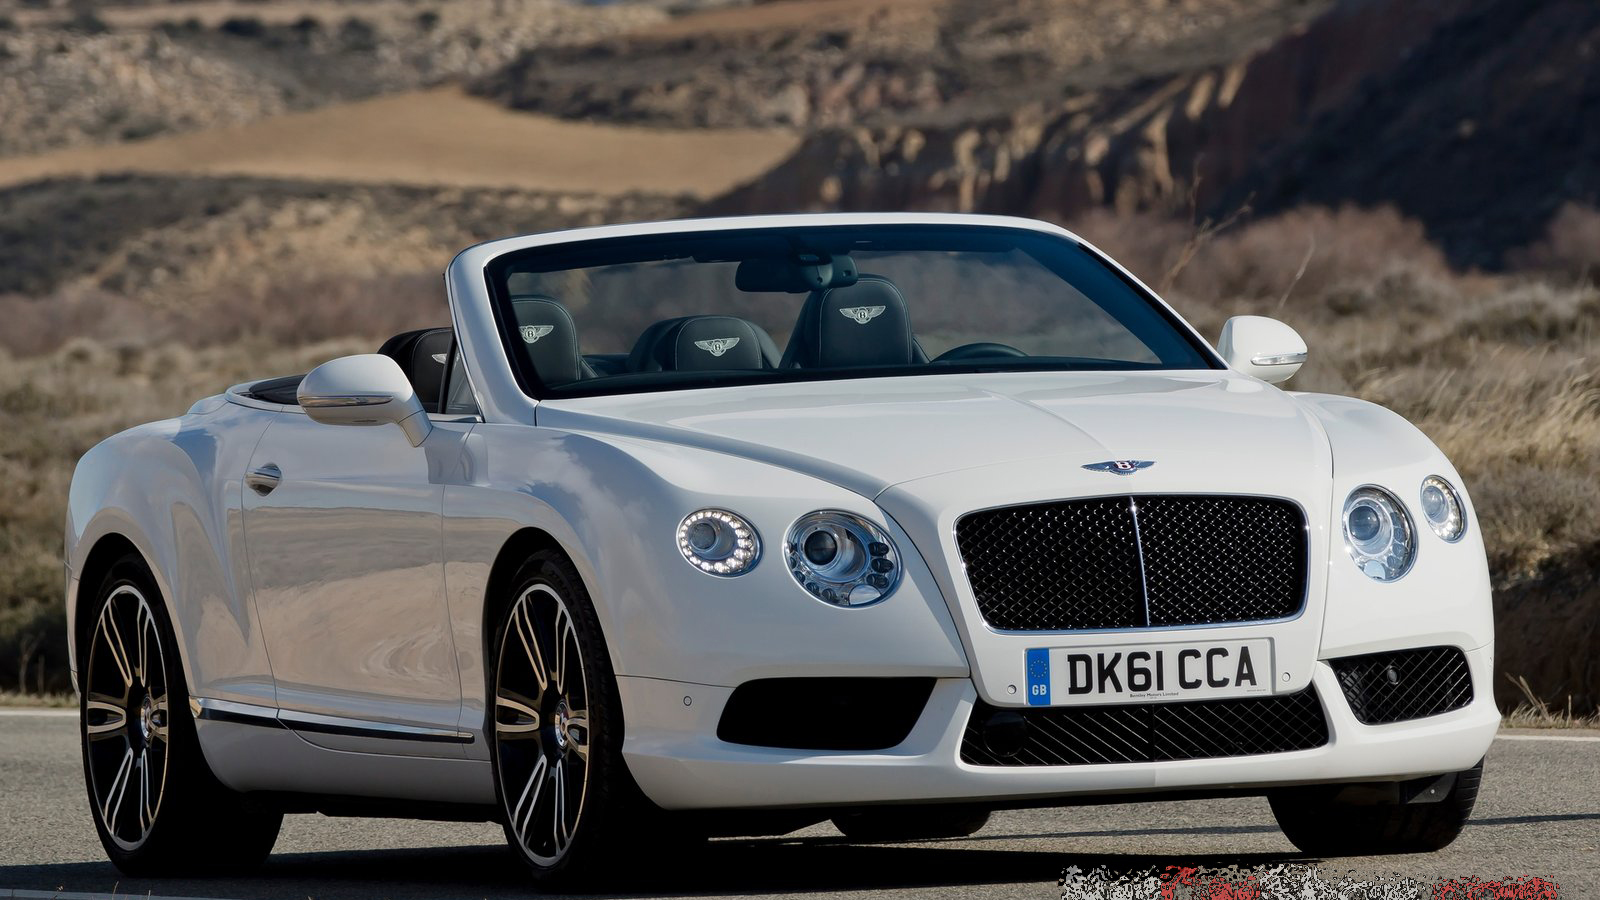 car wallpapers in good images  2013 bentley continental gtc 4 0 v8 twin turbo 507 cv 67 3 mkgf